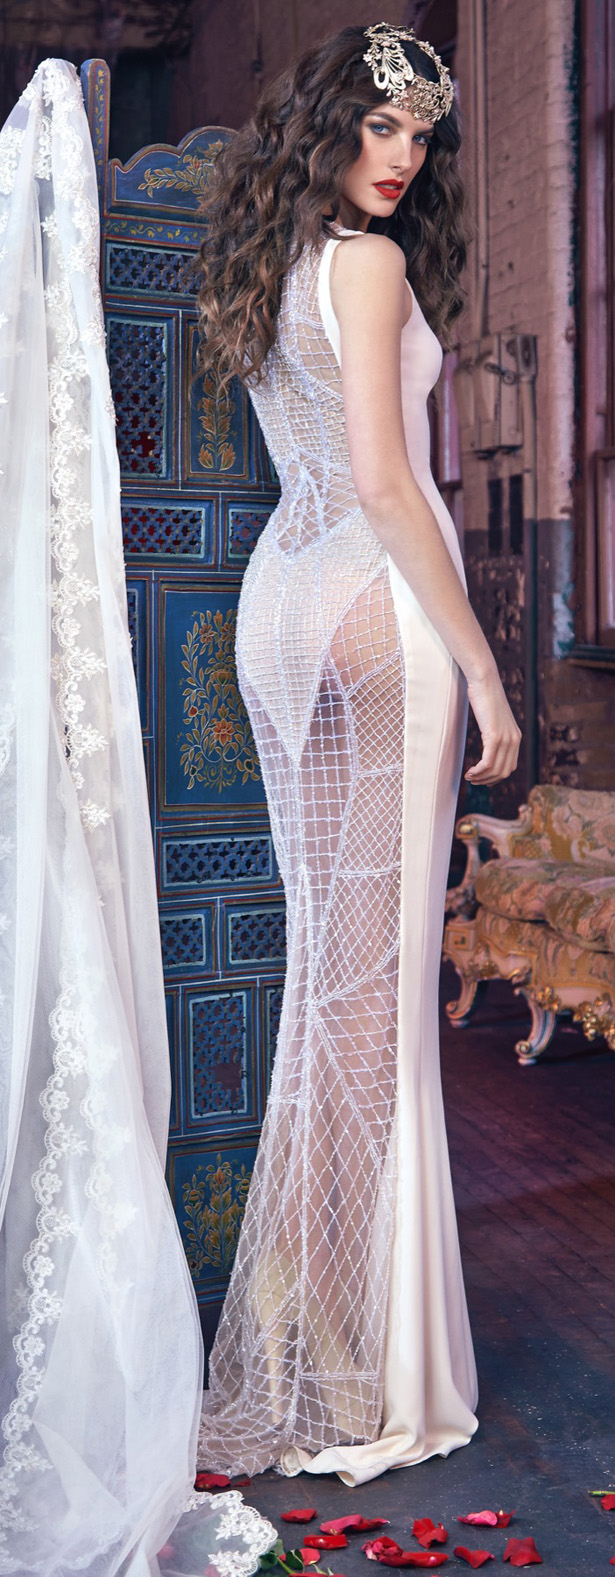 "Wedding Dress by Galia Lahav ""Les Reves Bohemians"""